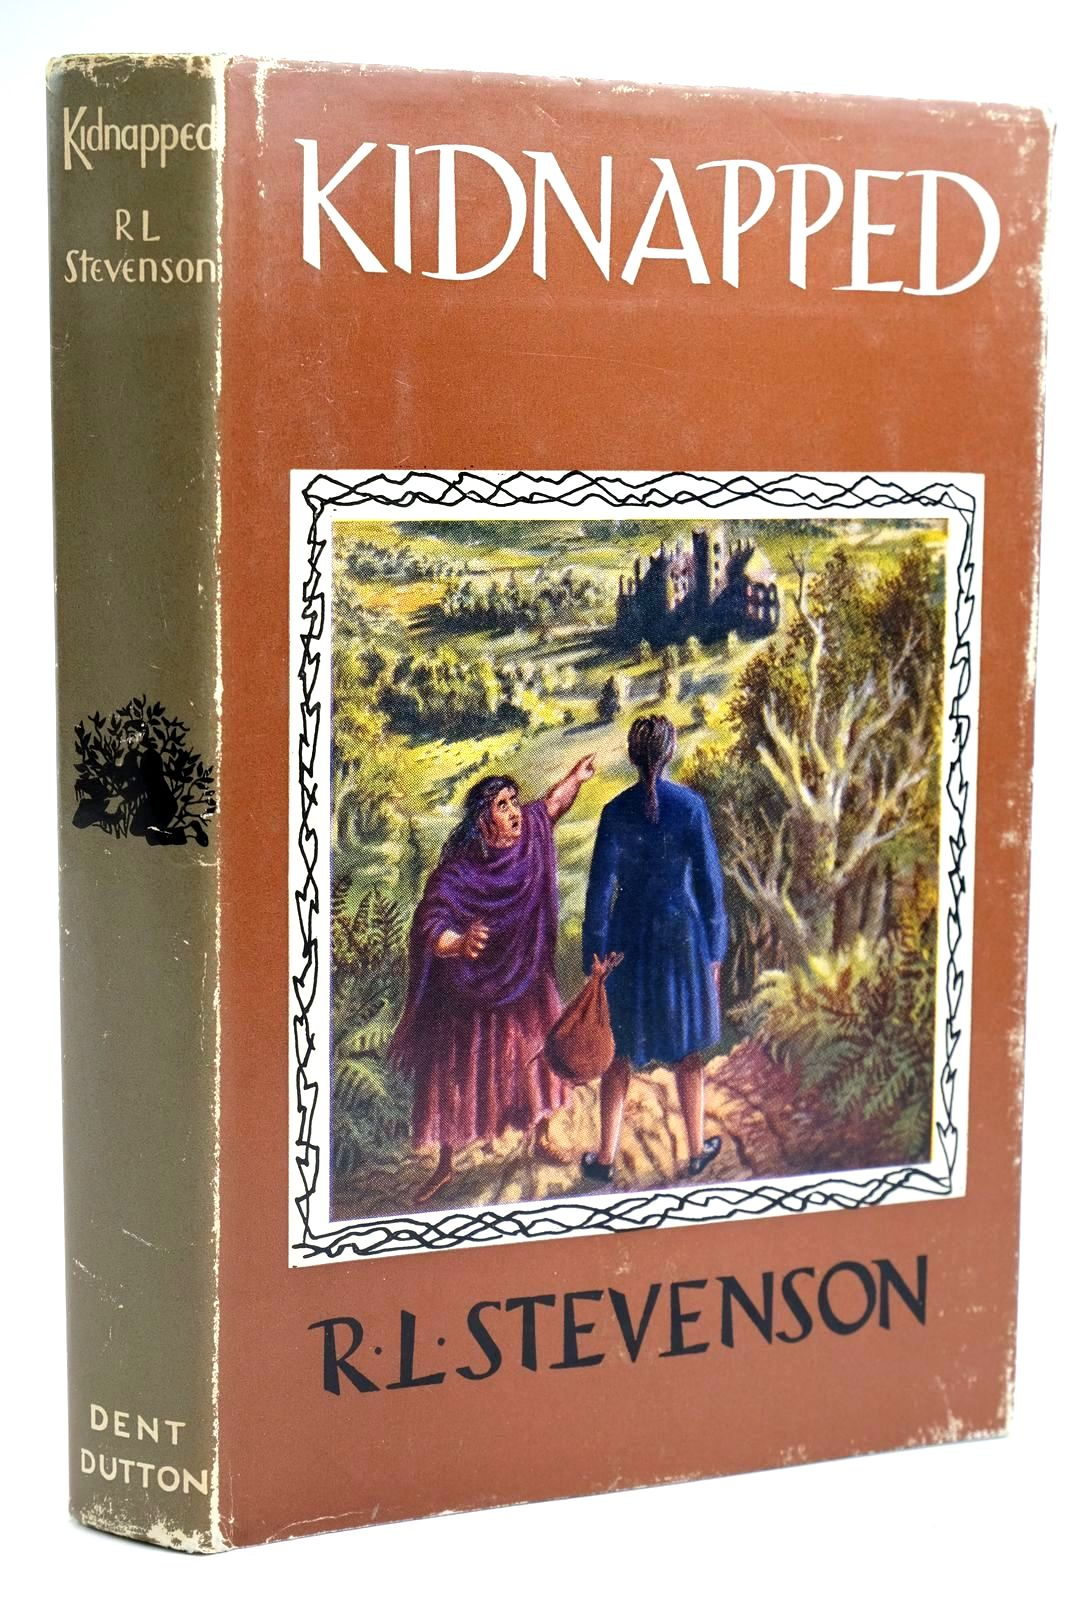 Photo of KIDNAPPED written by Stevenson, Robert Louis illustrated by Oakley, G. published by J.M. Dent & Sons Ltd. (STOCK CODE: 1319183)  for sale by Stella & Rose's Books